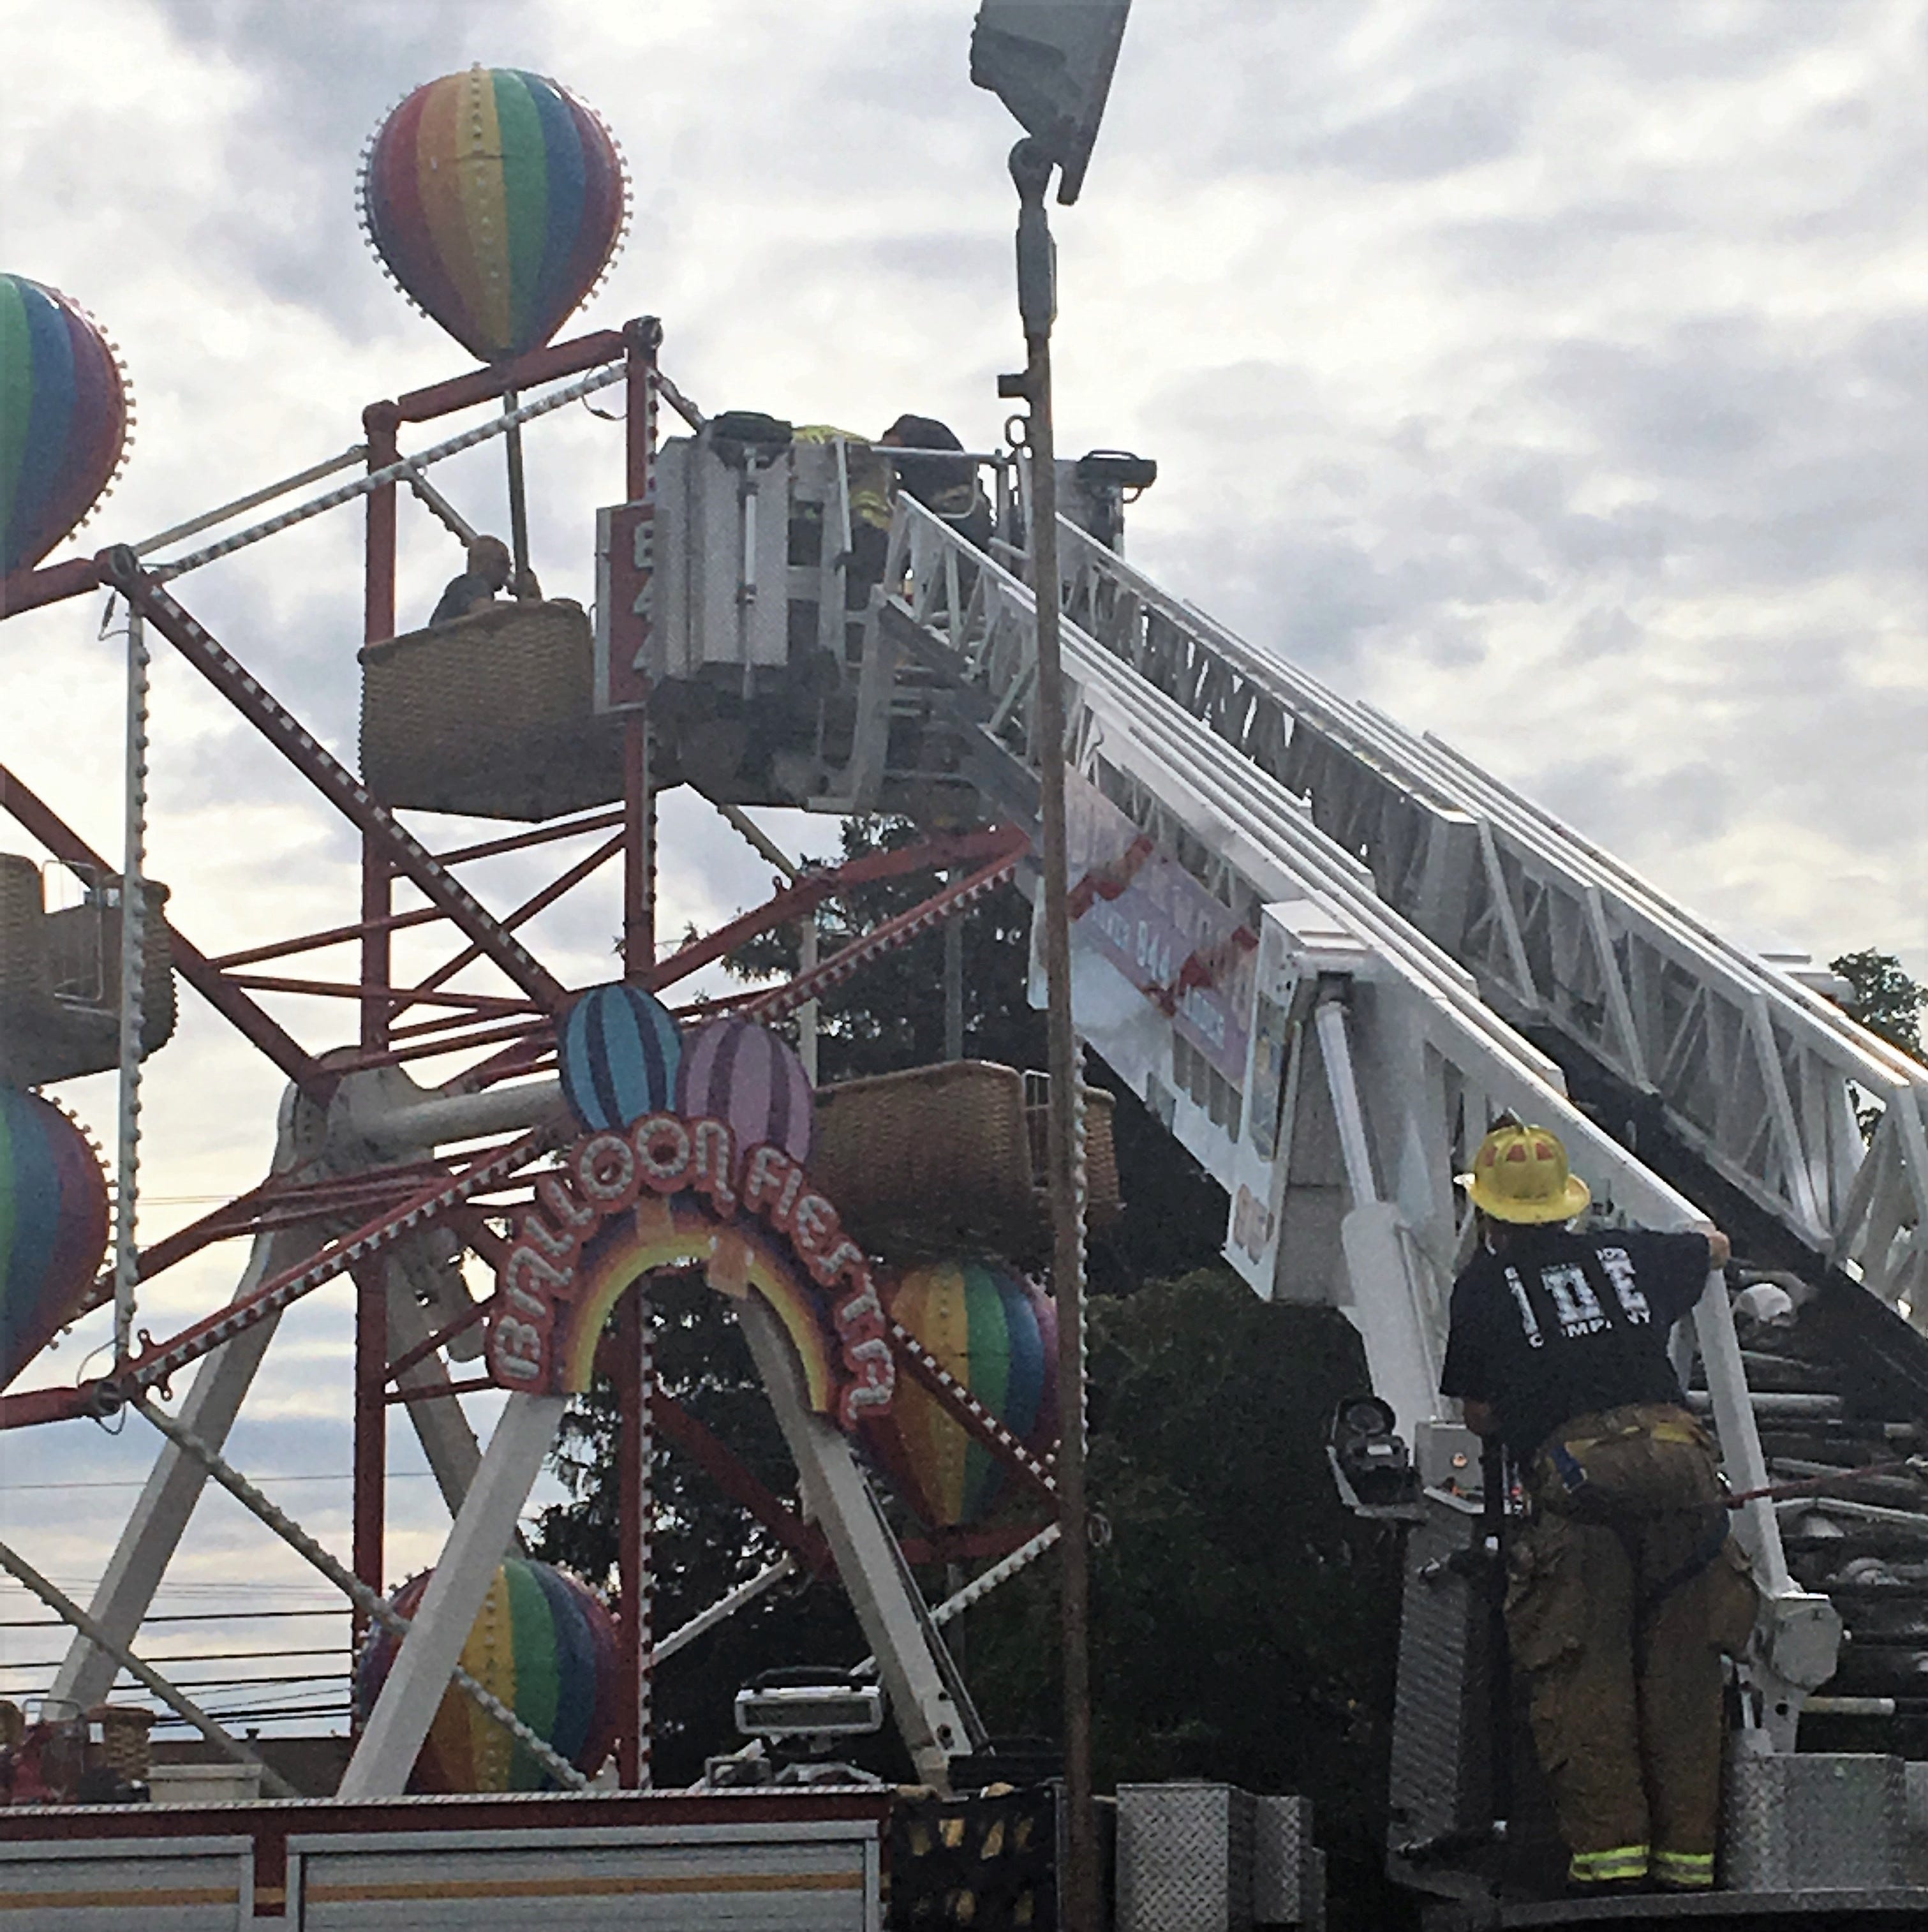 Firefighters rescued riders from a Ferris wheel that broke down at Camden County Fair Saturday.